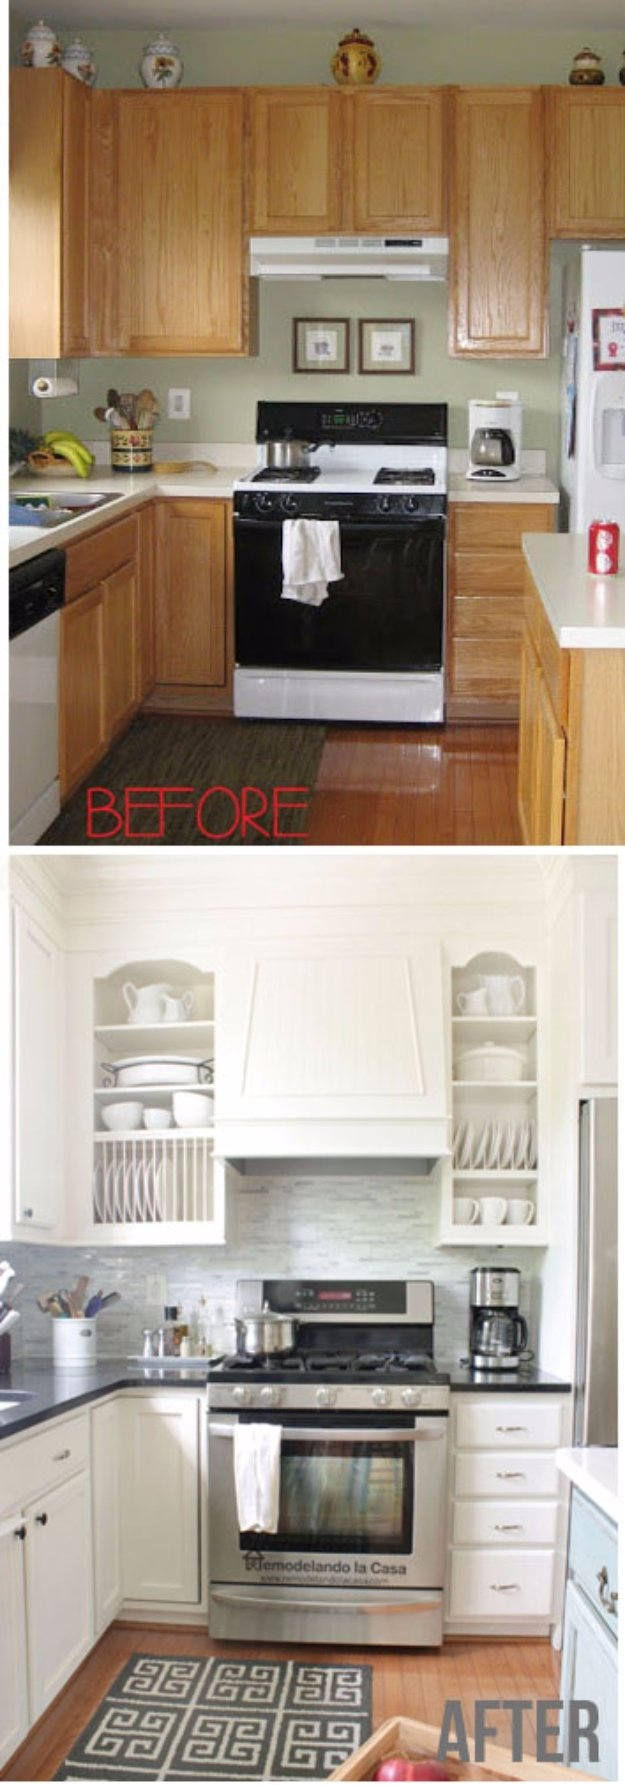 10 Fantastic Kitchen Makeover Ideas On A Budget 37 brilliant diy kitchen makeover ideas 2020